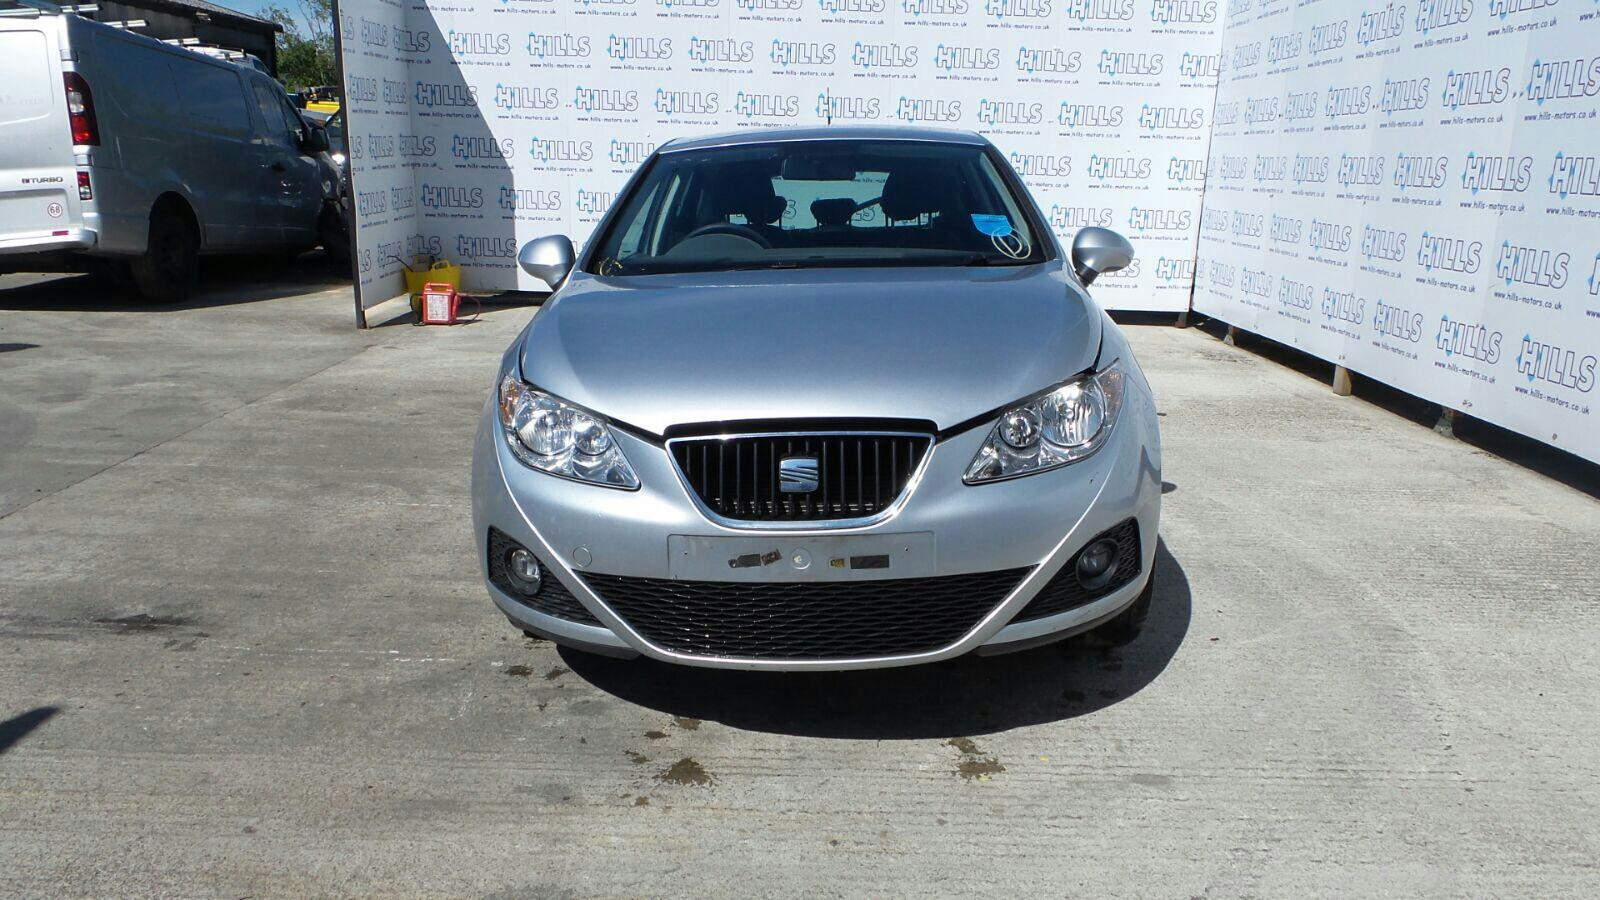 2011 seat ibiza 1 4 16v chill 6j cggb front end bonnet. Black Bedroom Furniture Sets. Home Design Ideas